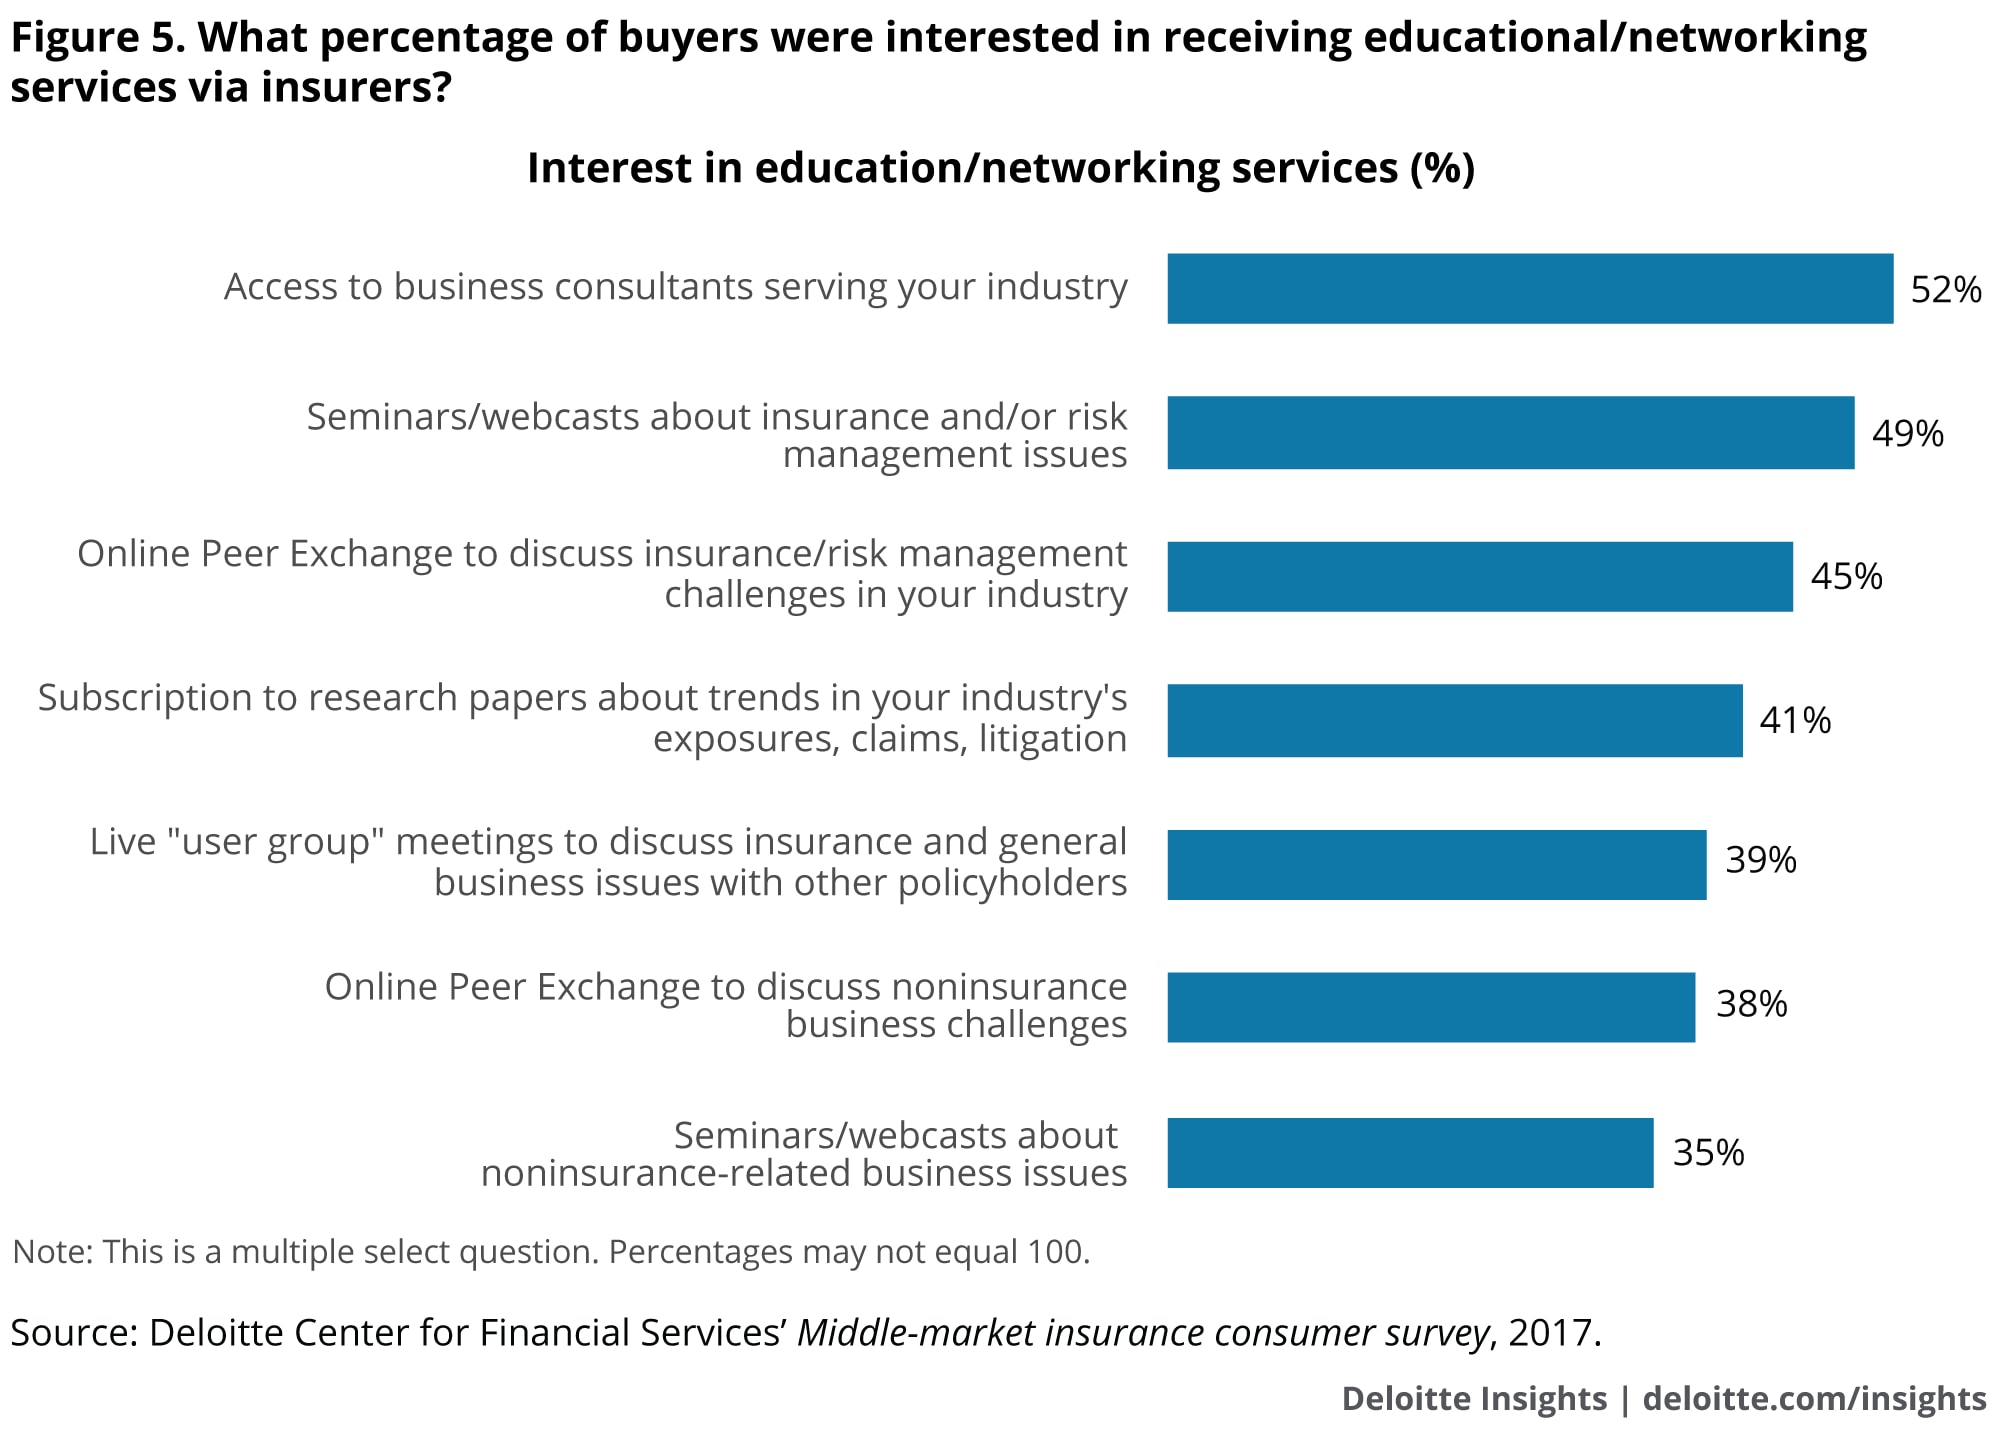 What percentage of buyers were interested in receiving educational/networking services via insurers?